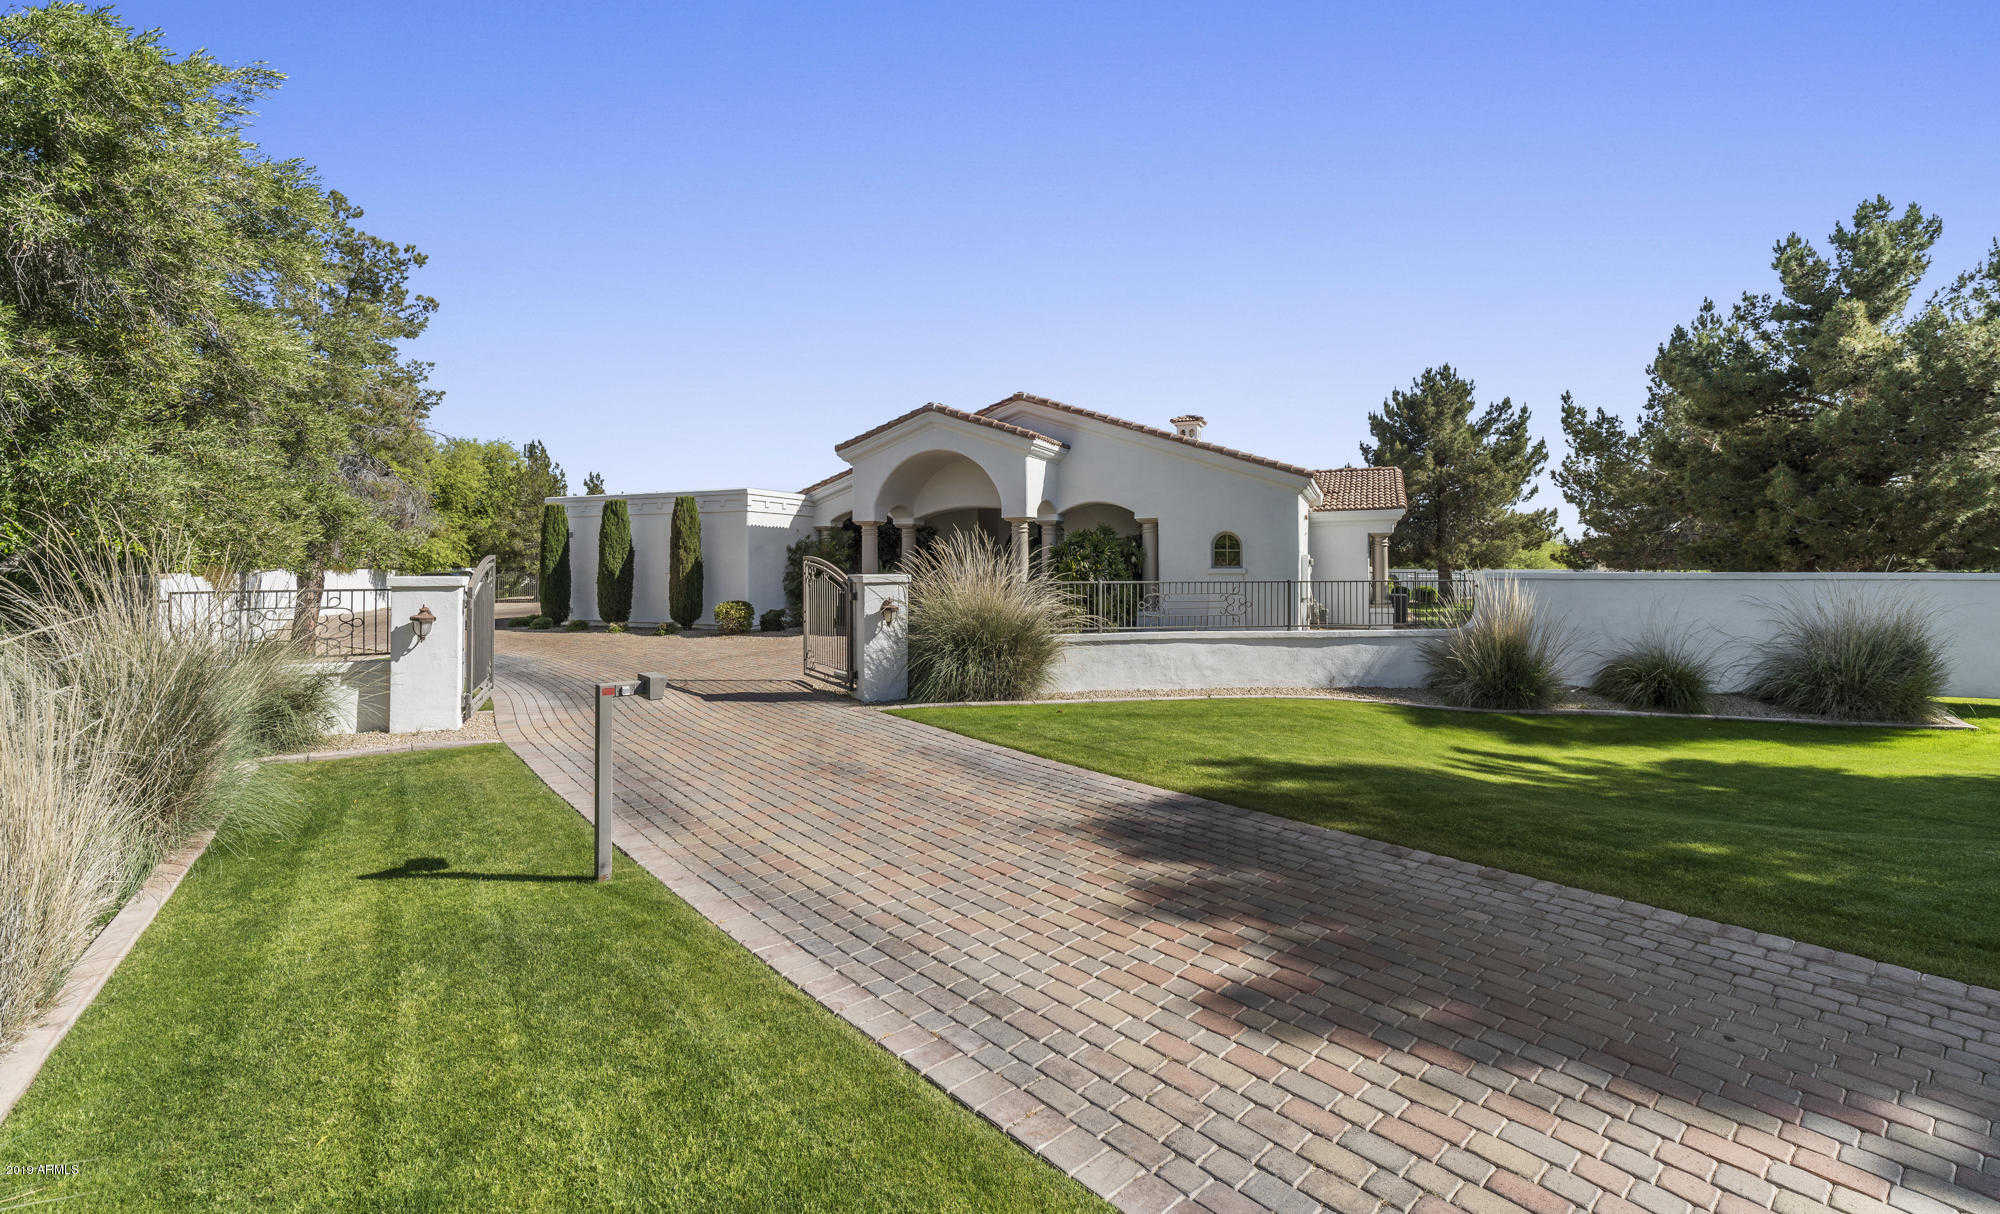 $1,850,000 - 5Br/4Ba - Home for Sale in Paradise Valley Vistas, Paradise Valley